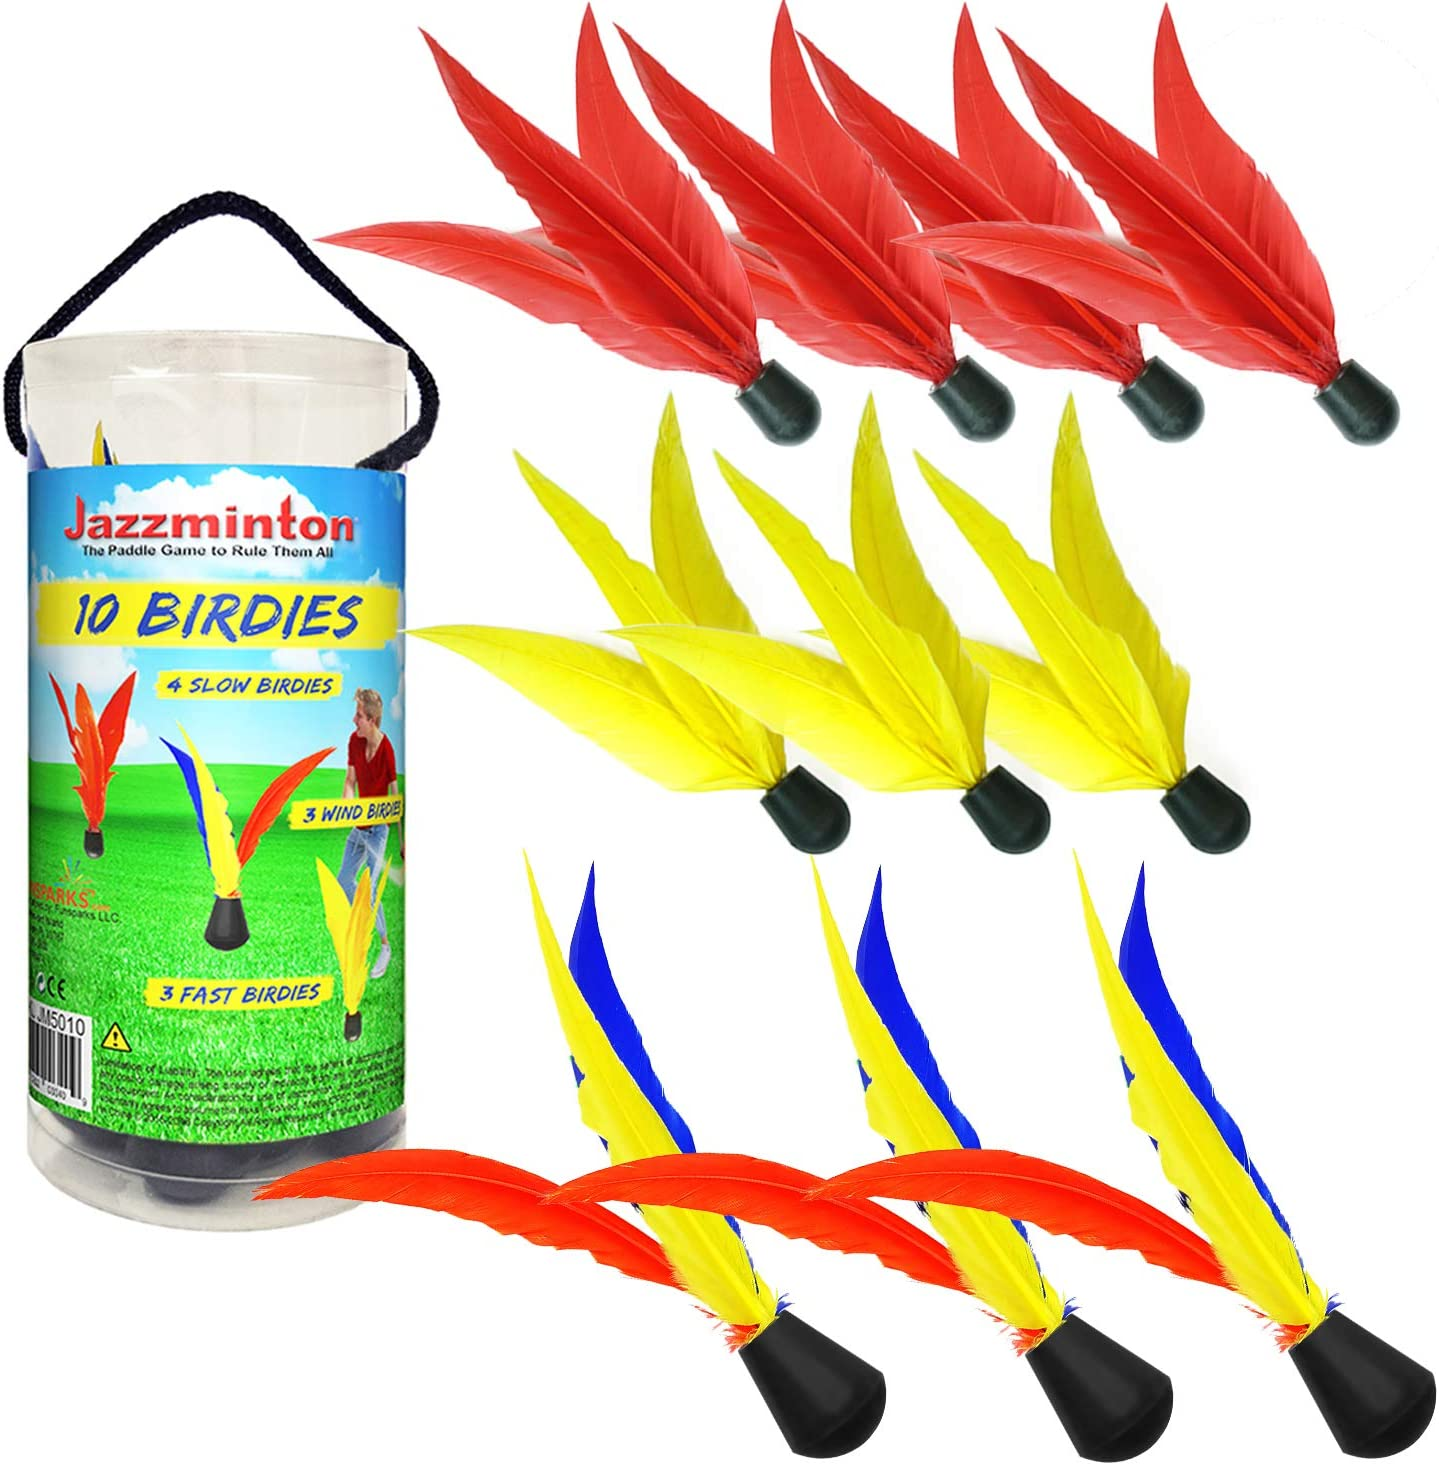 Funsparks Jazzminton 10 Replacement Birdies or Shuttlecocks for Indoor and Outdoor Game - Played at Parks, Beach, Lawn, Yard, or Tailgating